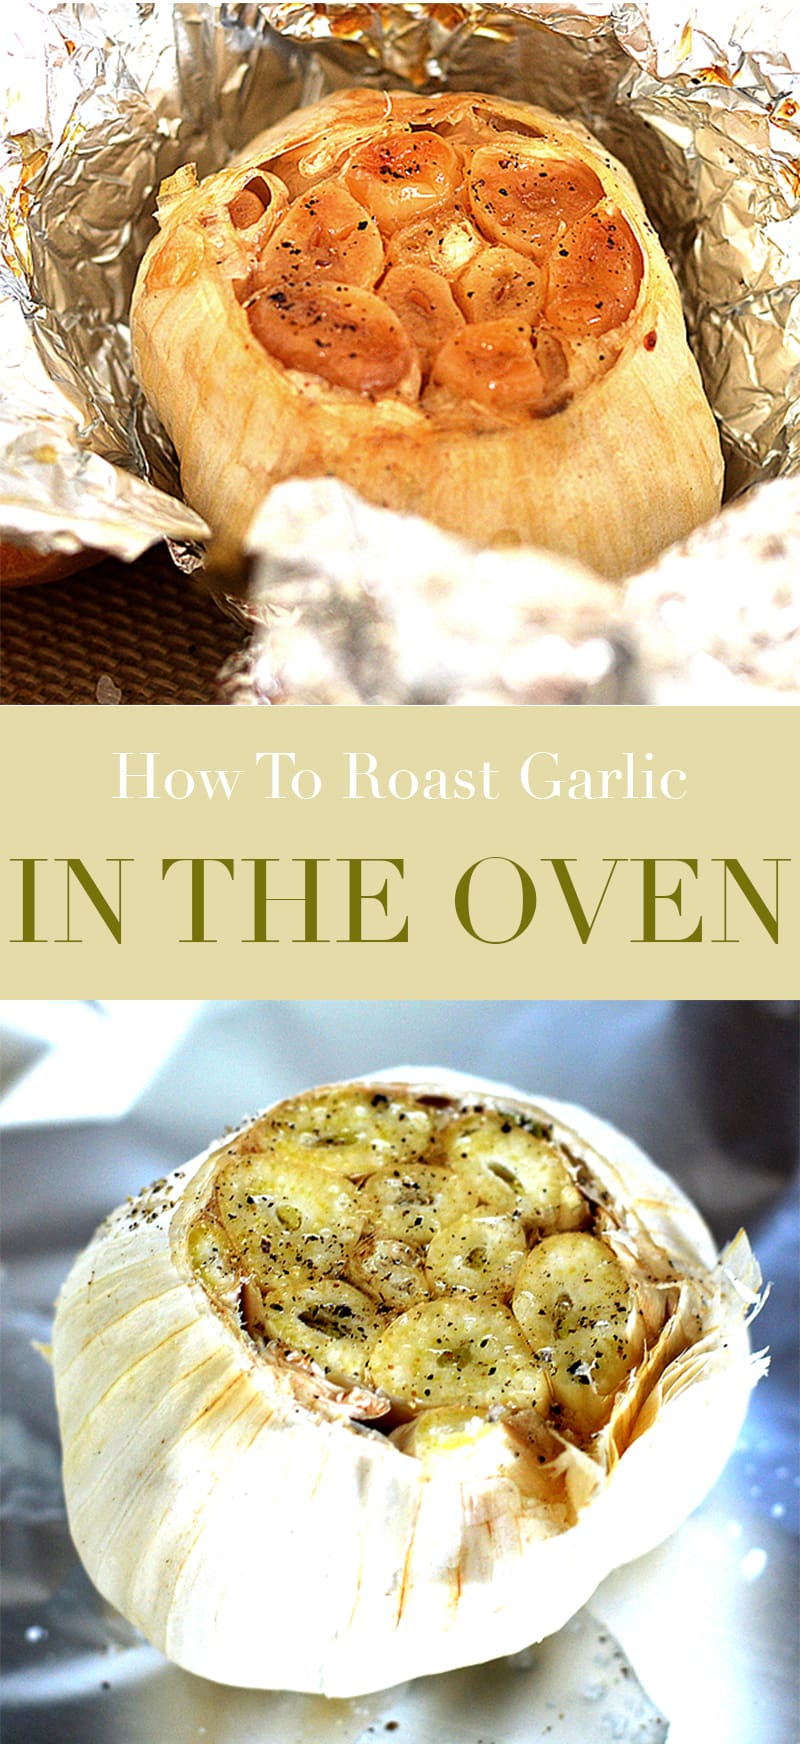 how-to-roast-garlic-in-the-oven